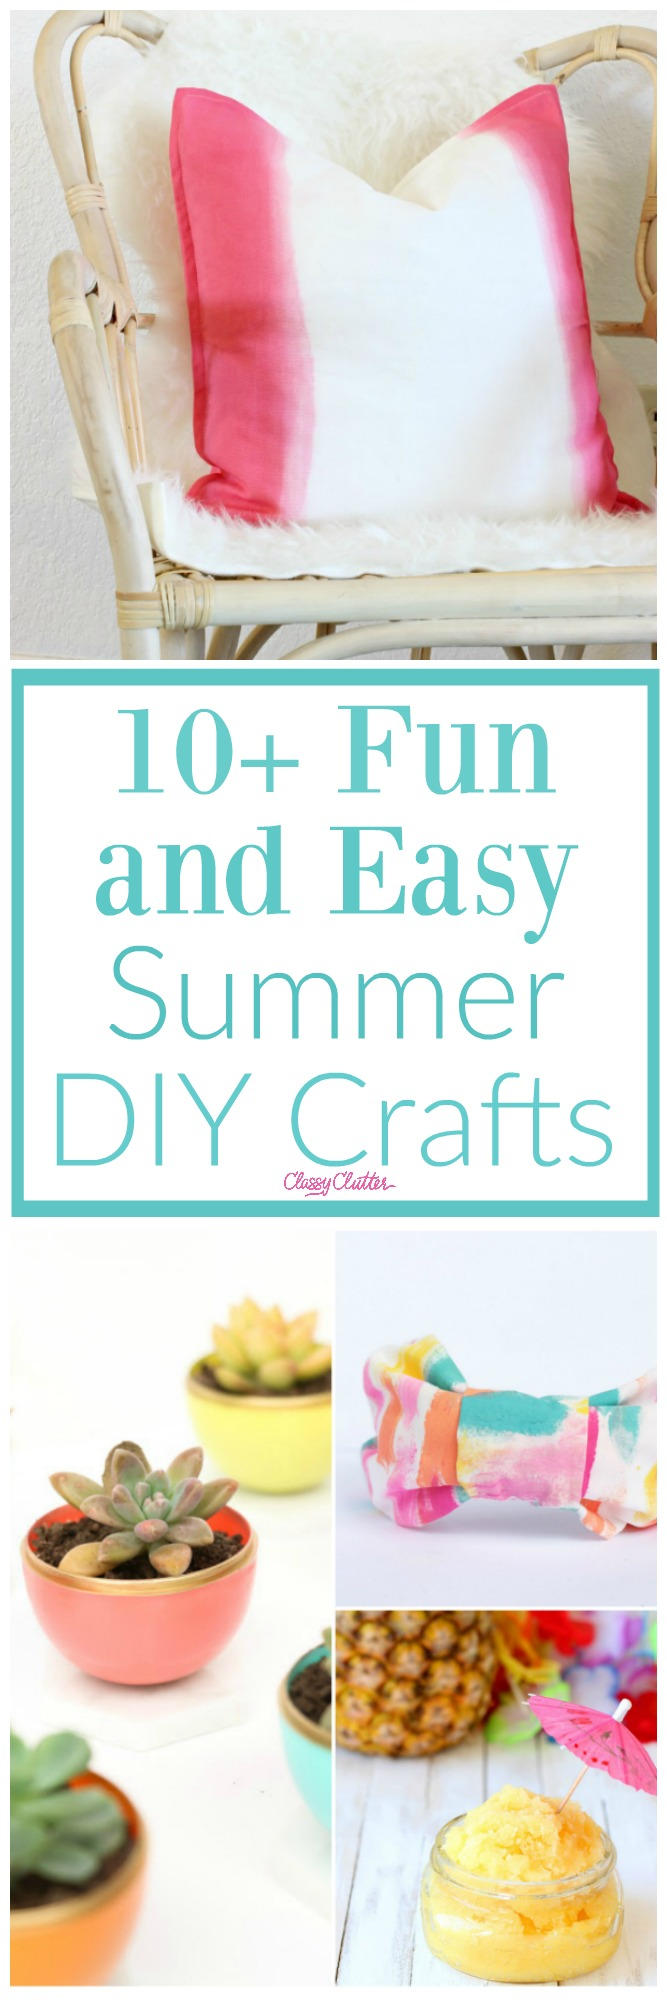 10 Fun And Easy Summer Diy Crafts Classy Clutter